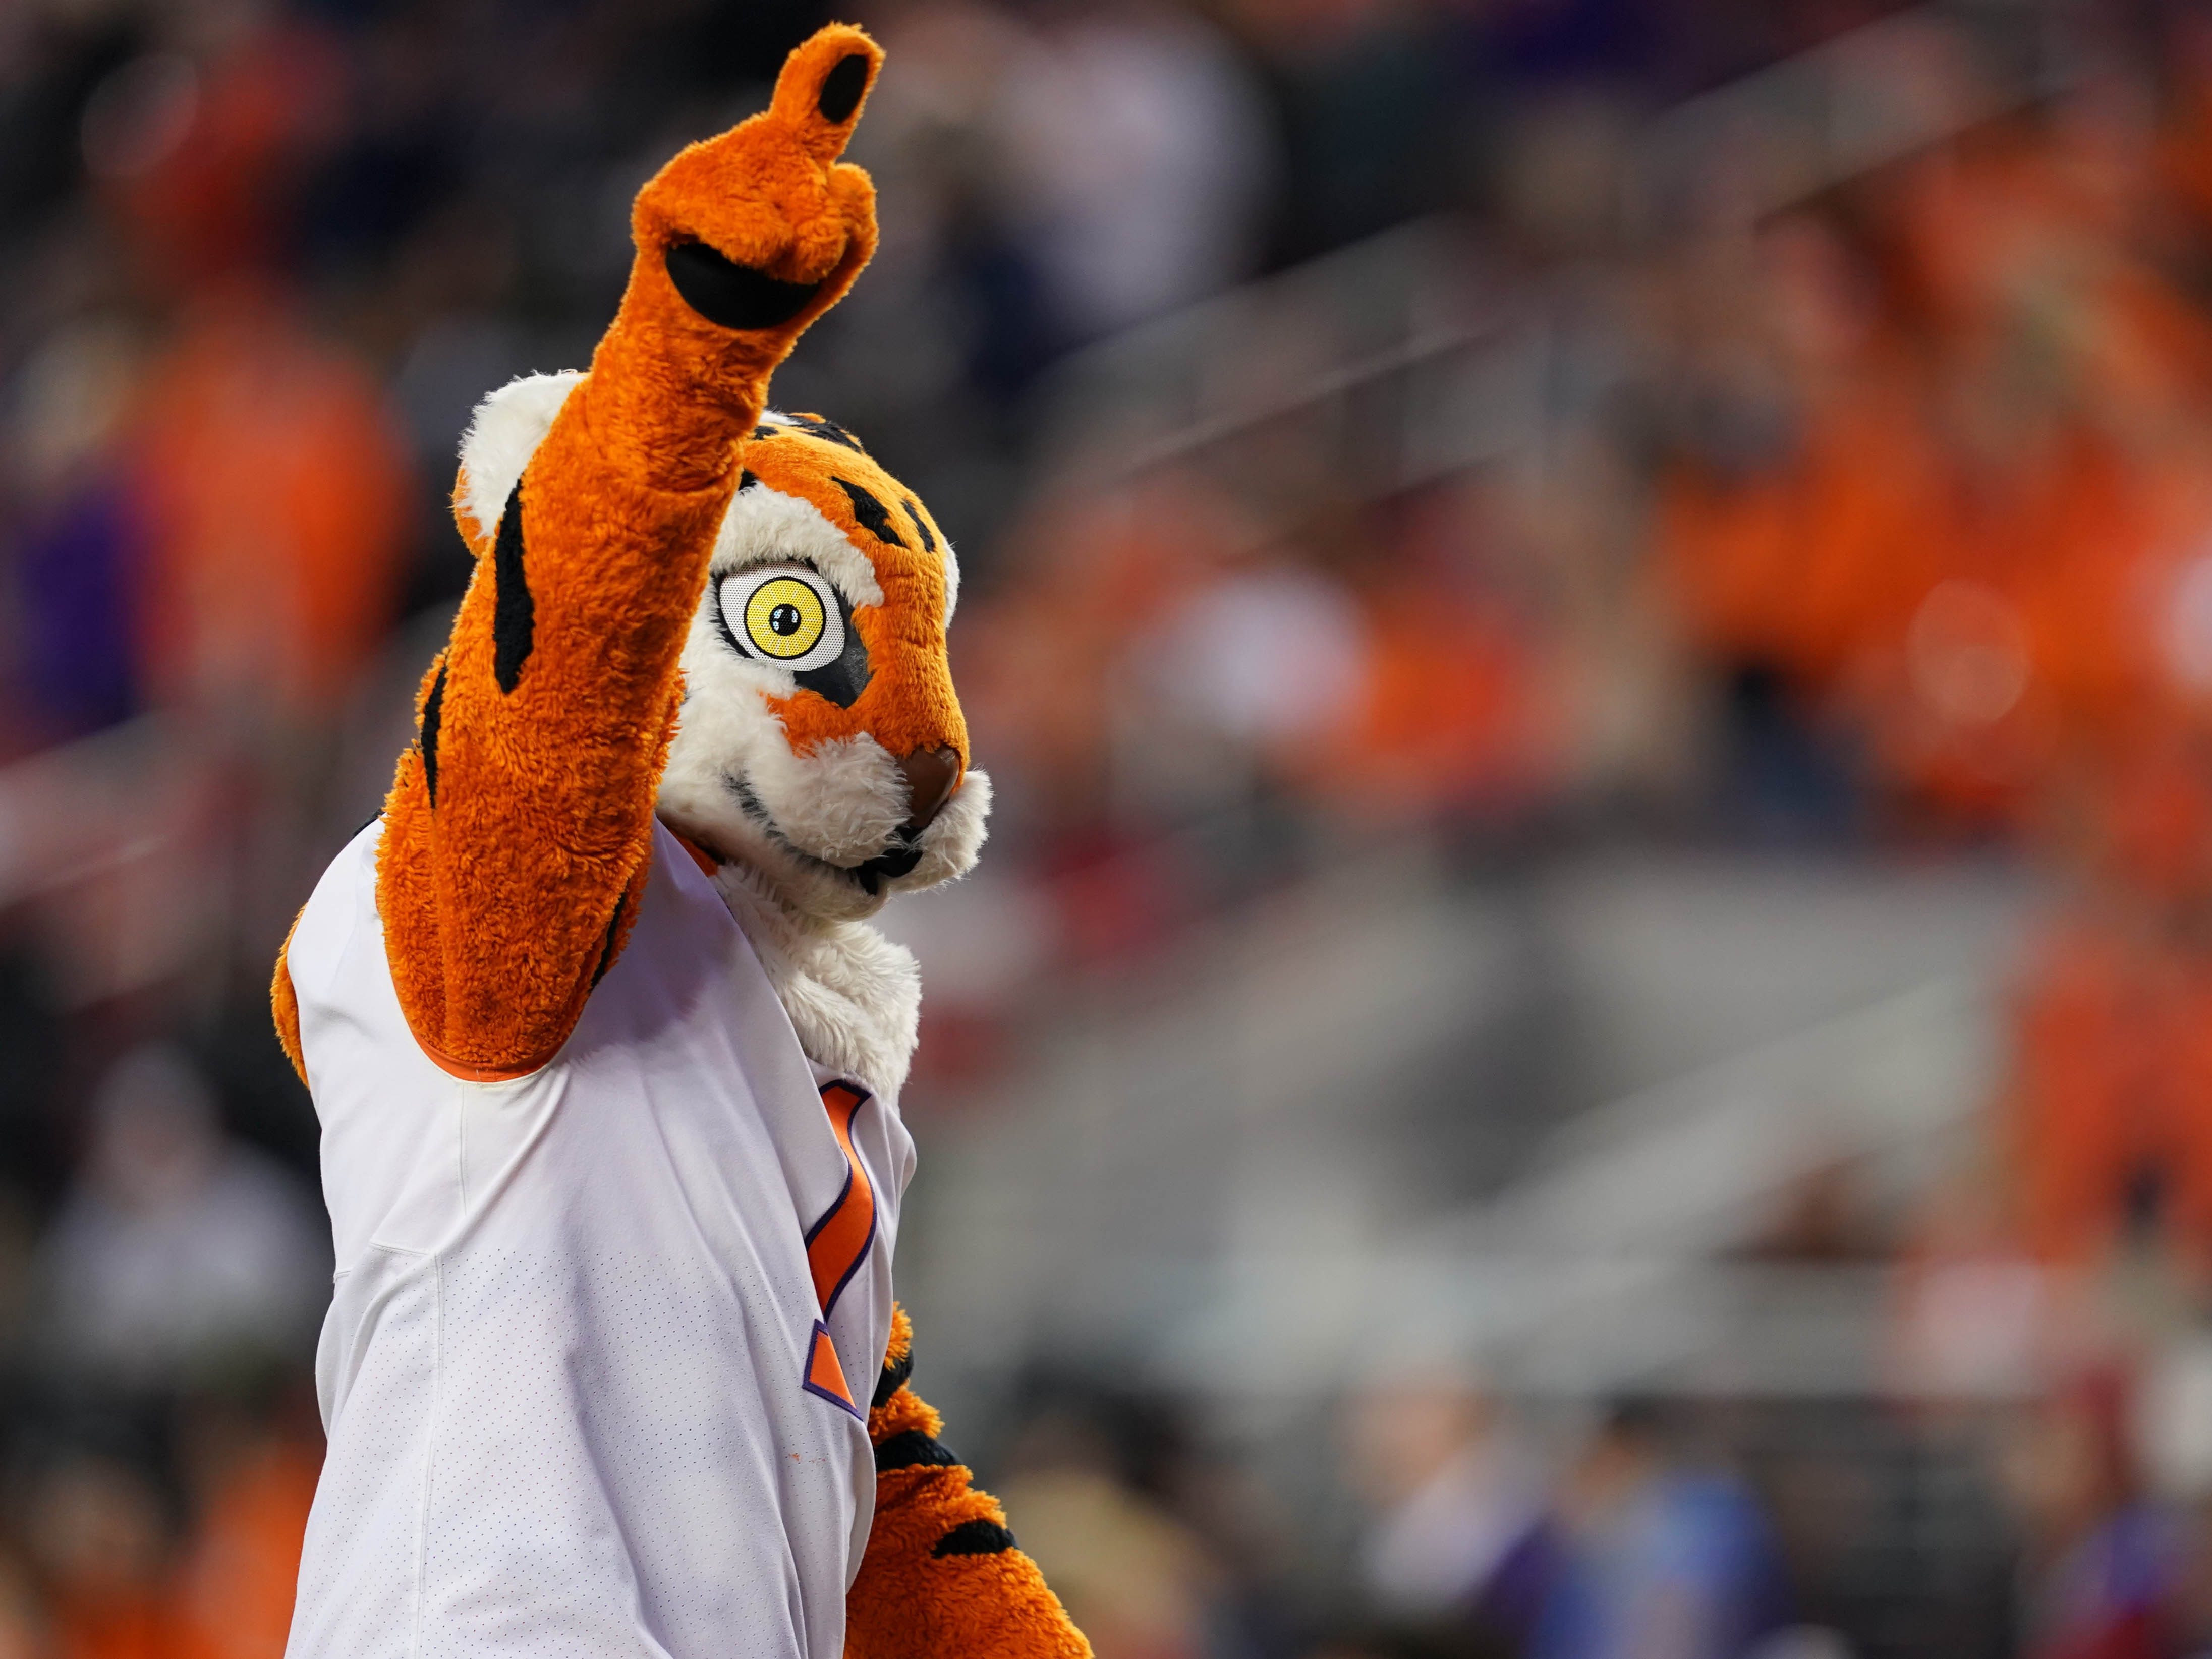 Clemson's mascot walks on the field before the game.